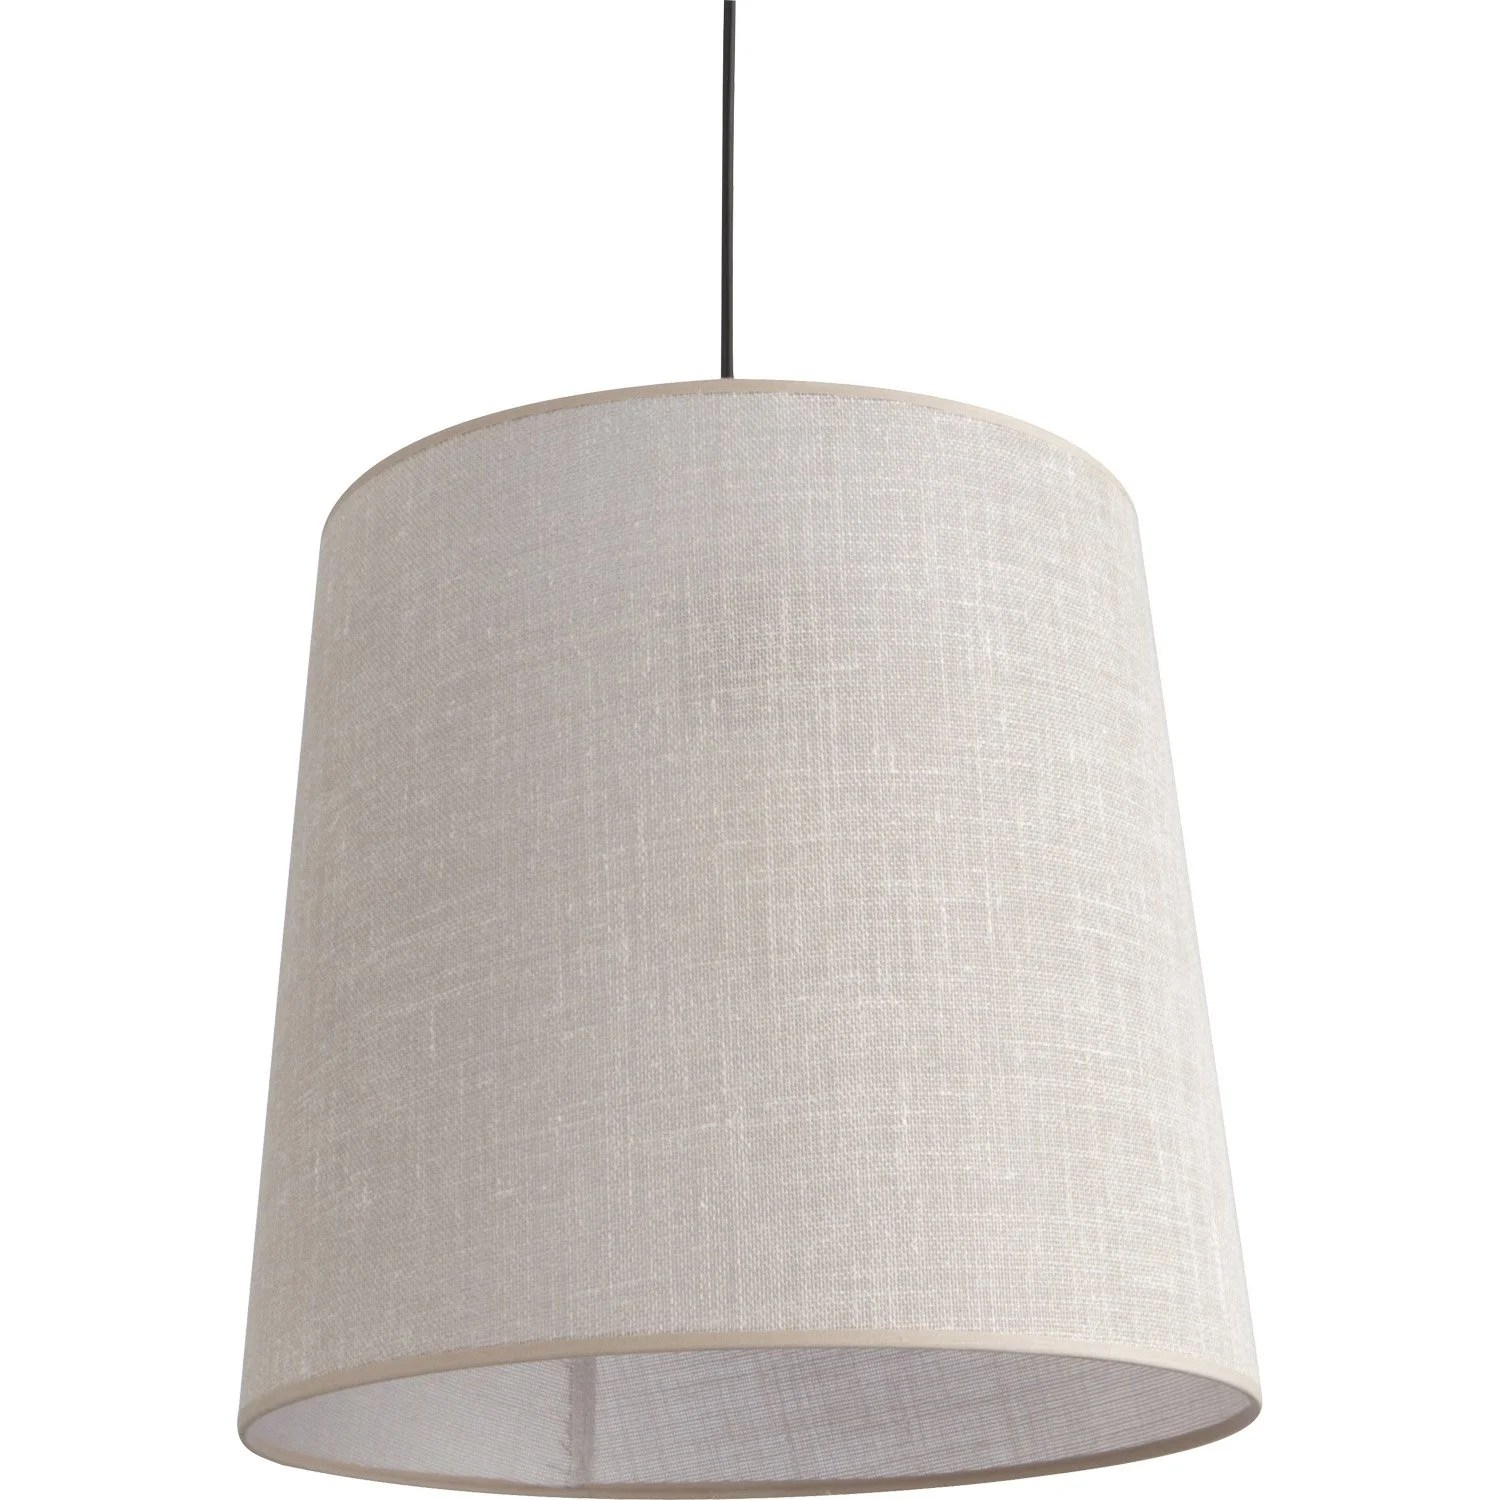 Suspension Lin Suspension E27 Design Conique Lin Taupe 1 X 100 W Corep